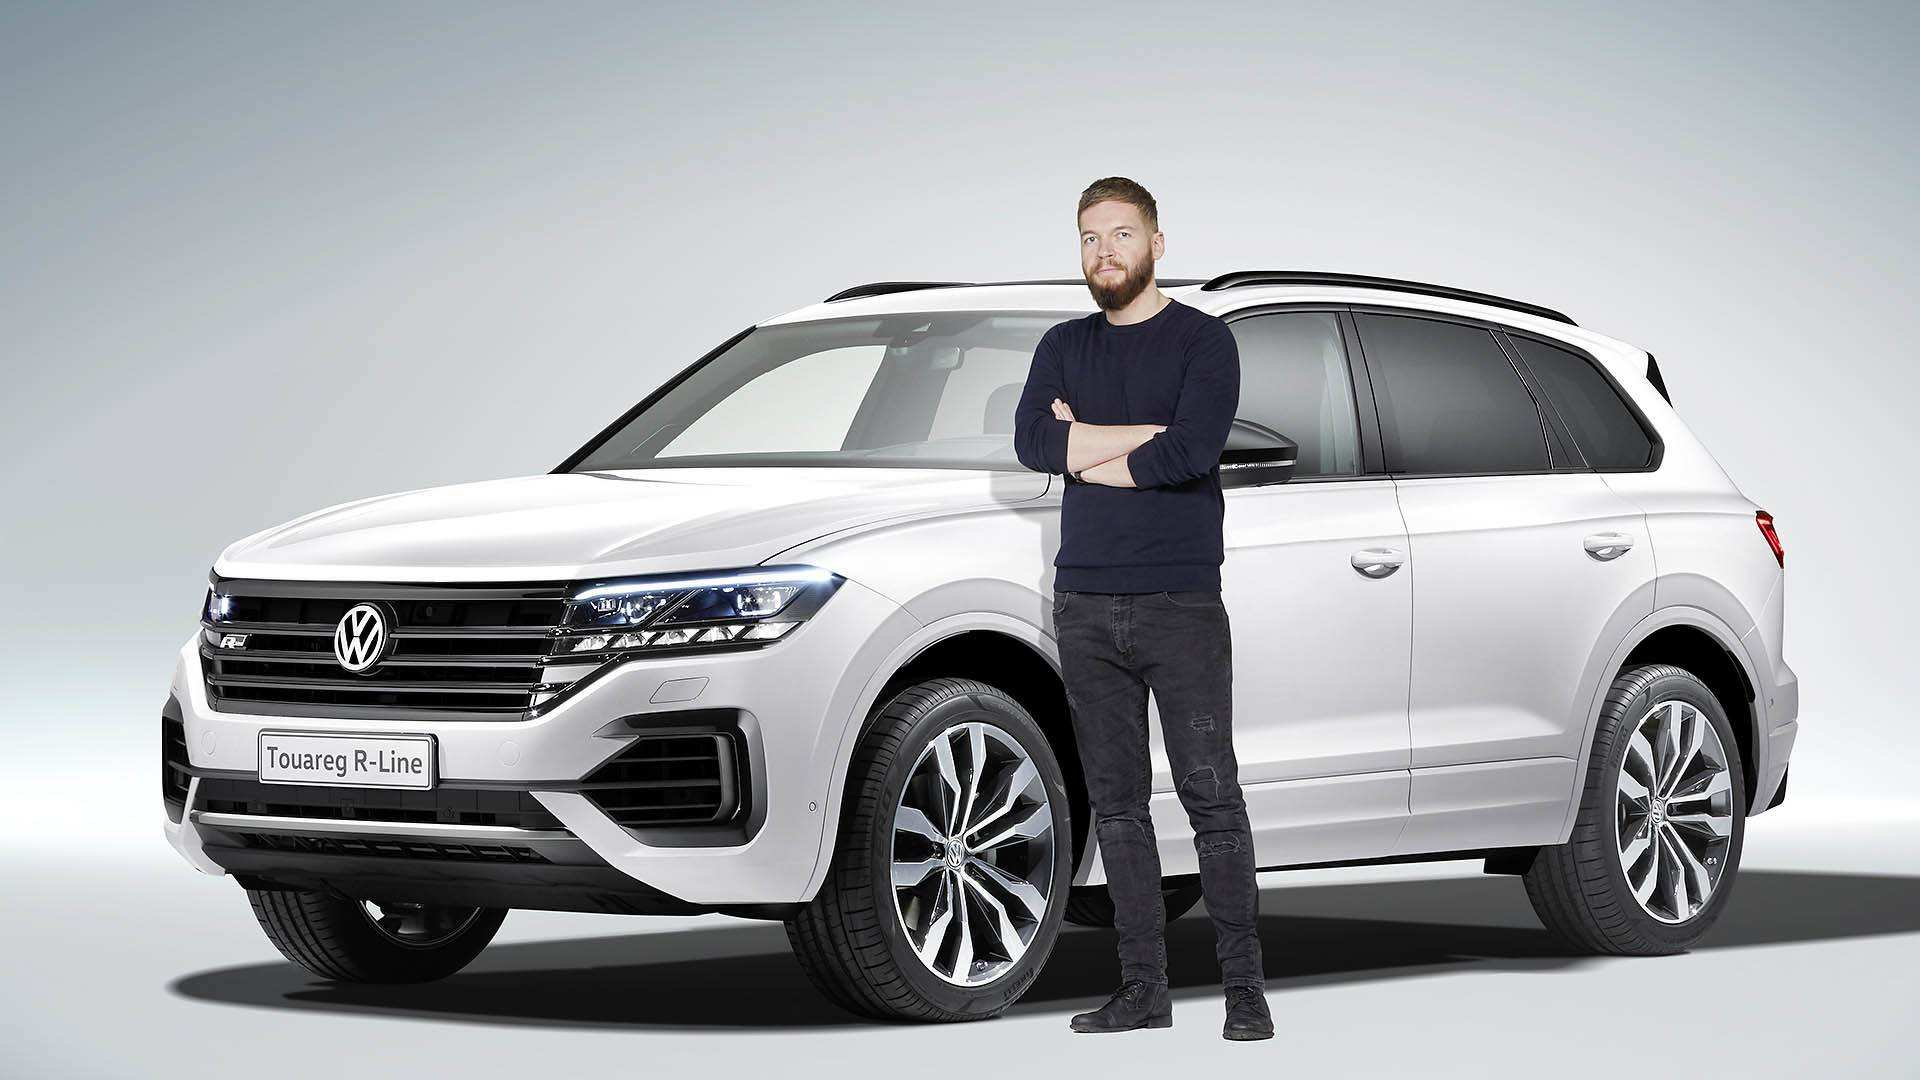 43 All New 2019 Vw Touareg Redesign with 2019 Vw Touareg